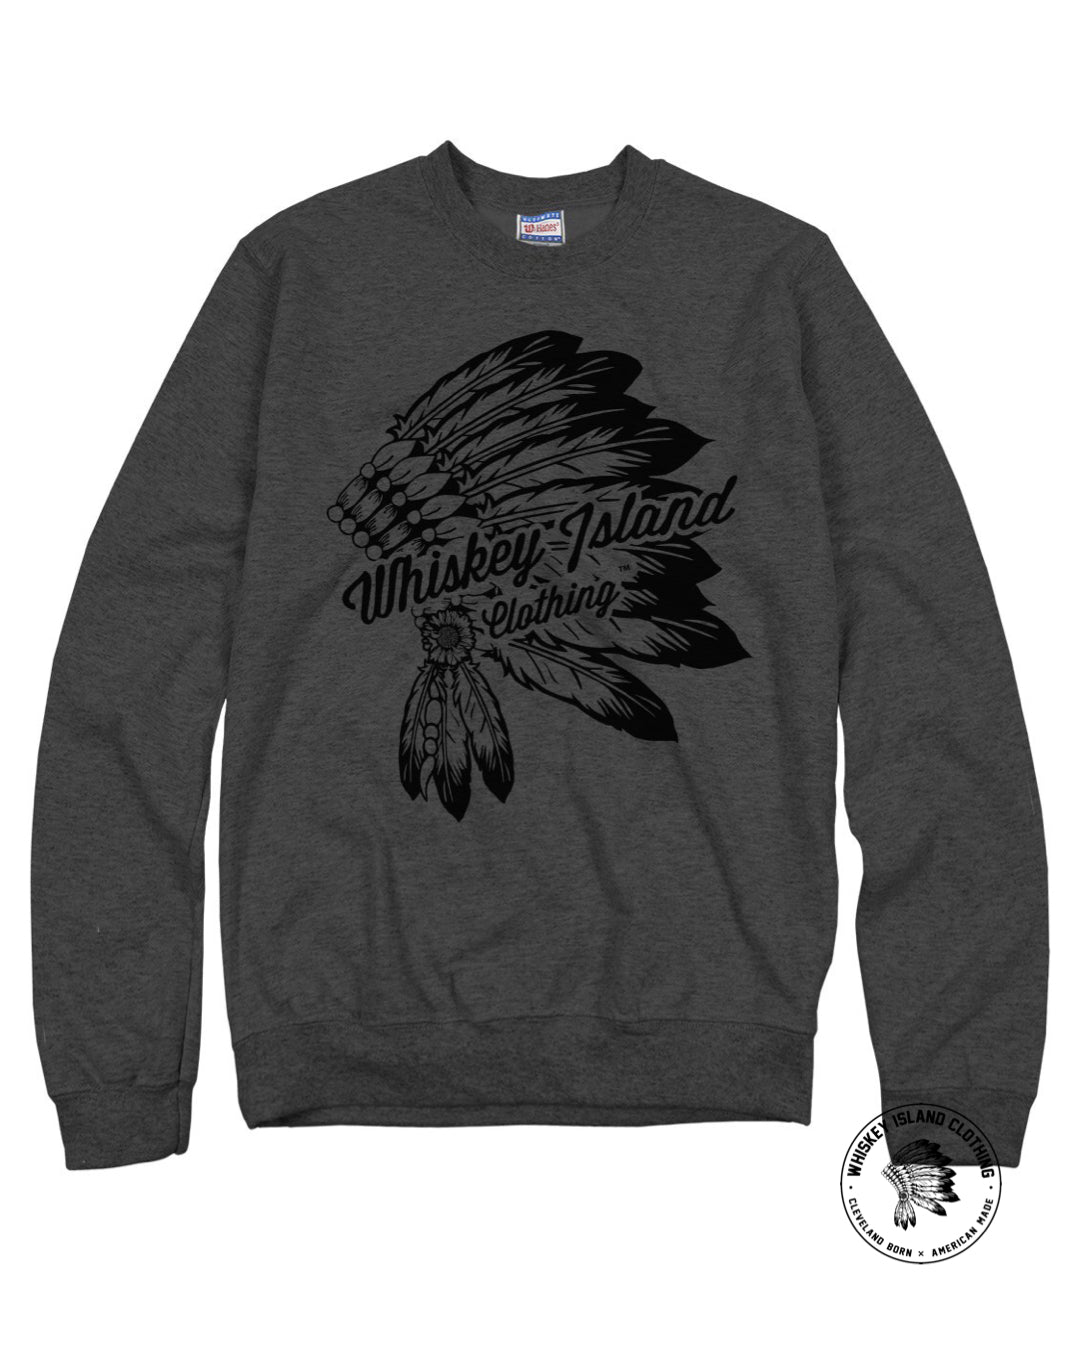 Headdress Script - Unisex Sweatshirt - Whiskey Island Clothing